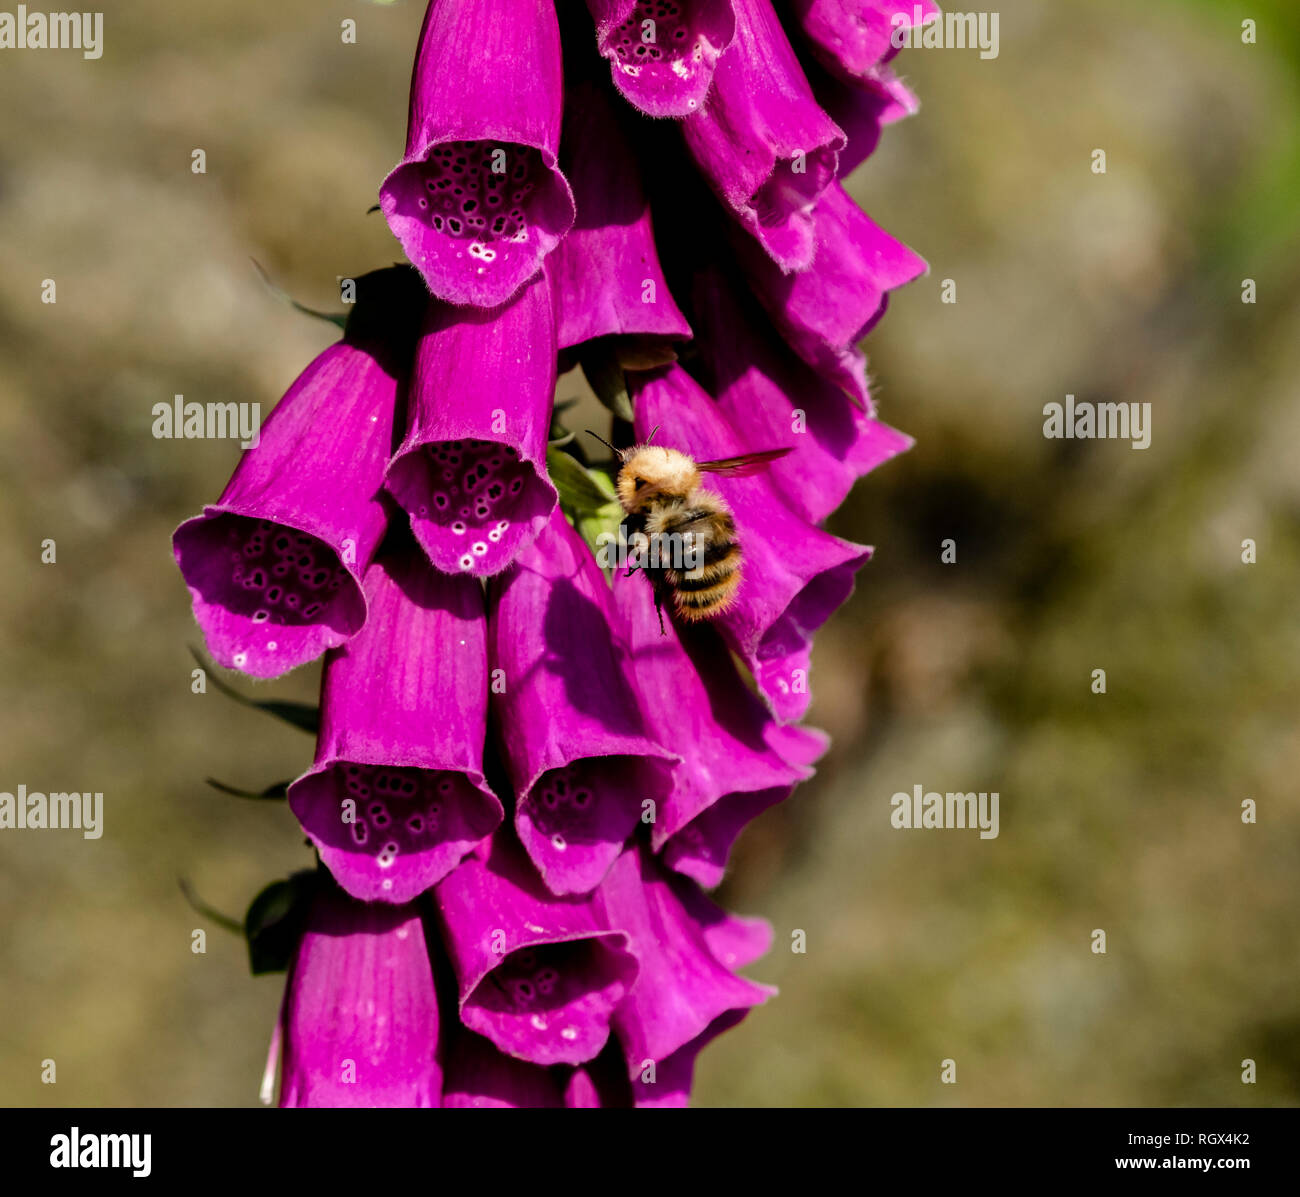 A bumble bee (bombus pascuorum) collecting pollen and nectar from a purple foxglove (digitalis). Stock Photo